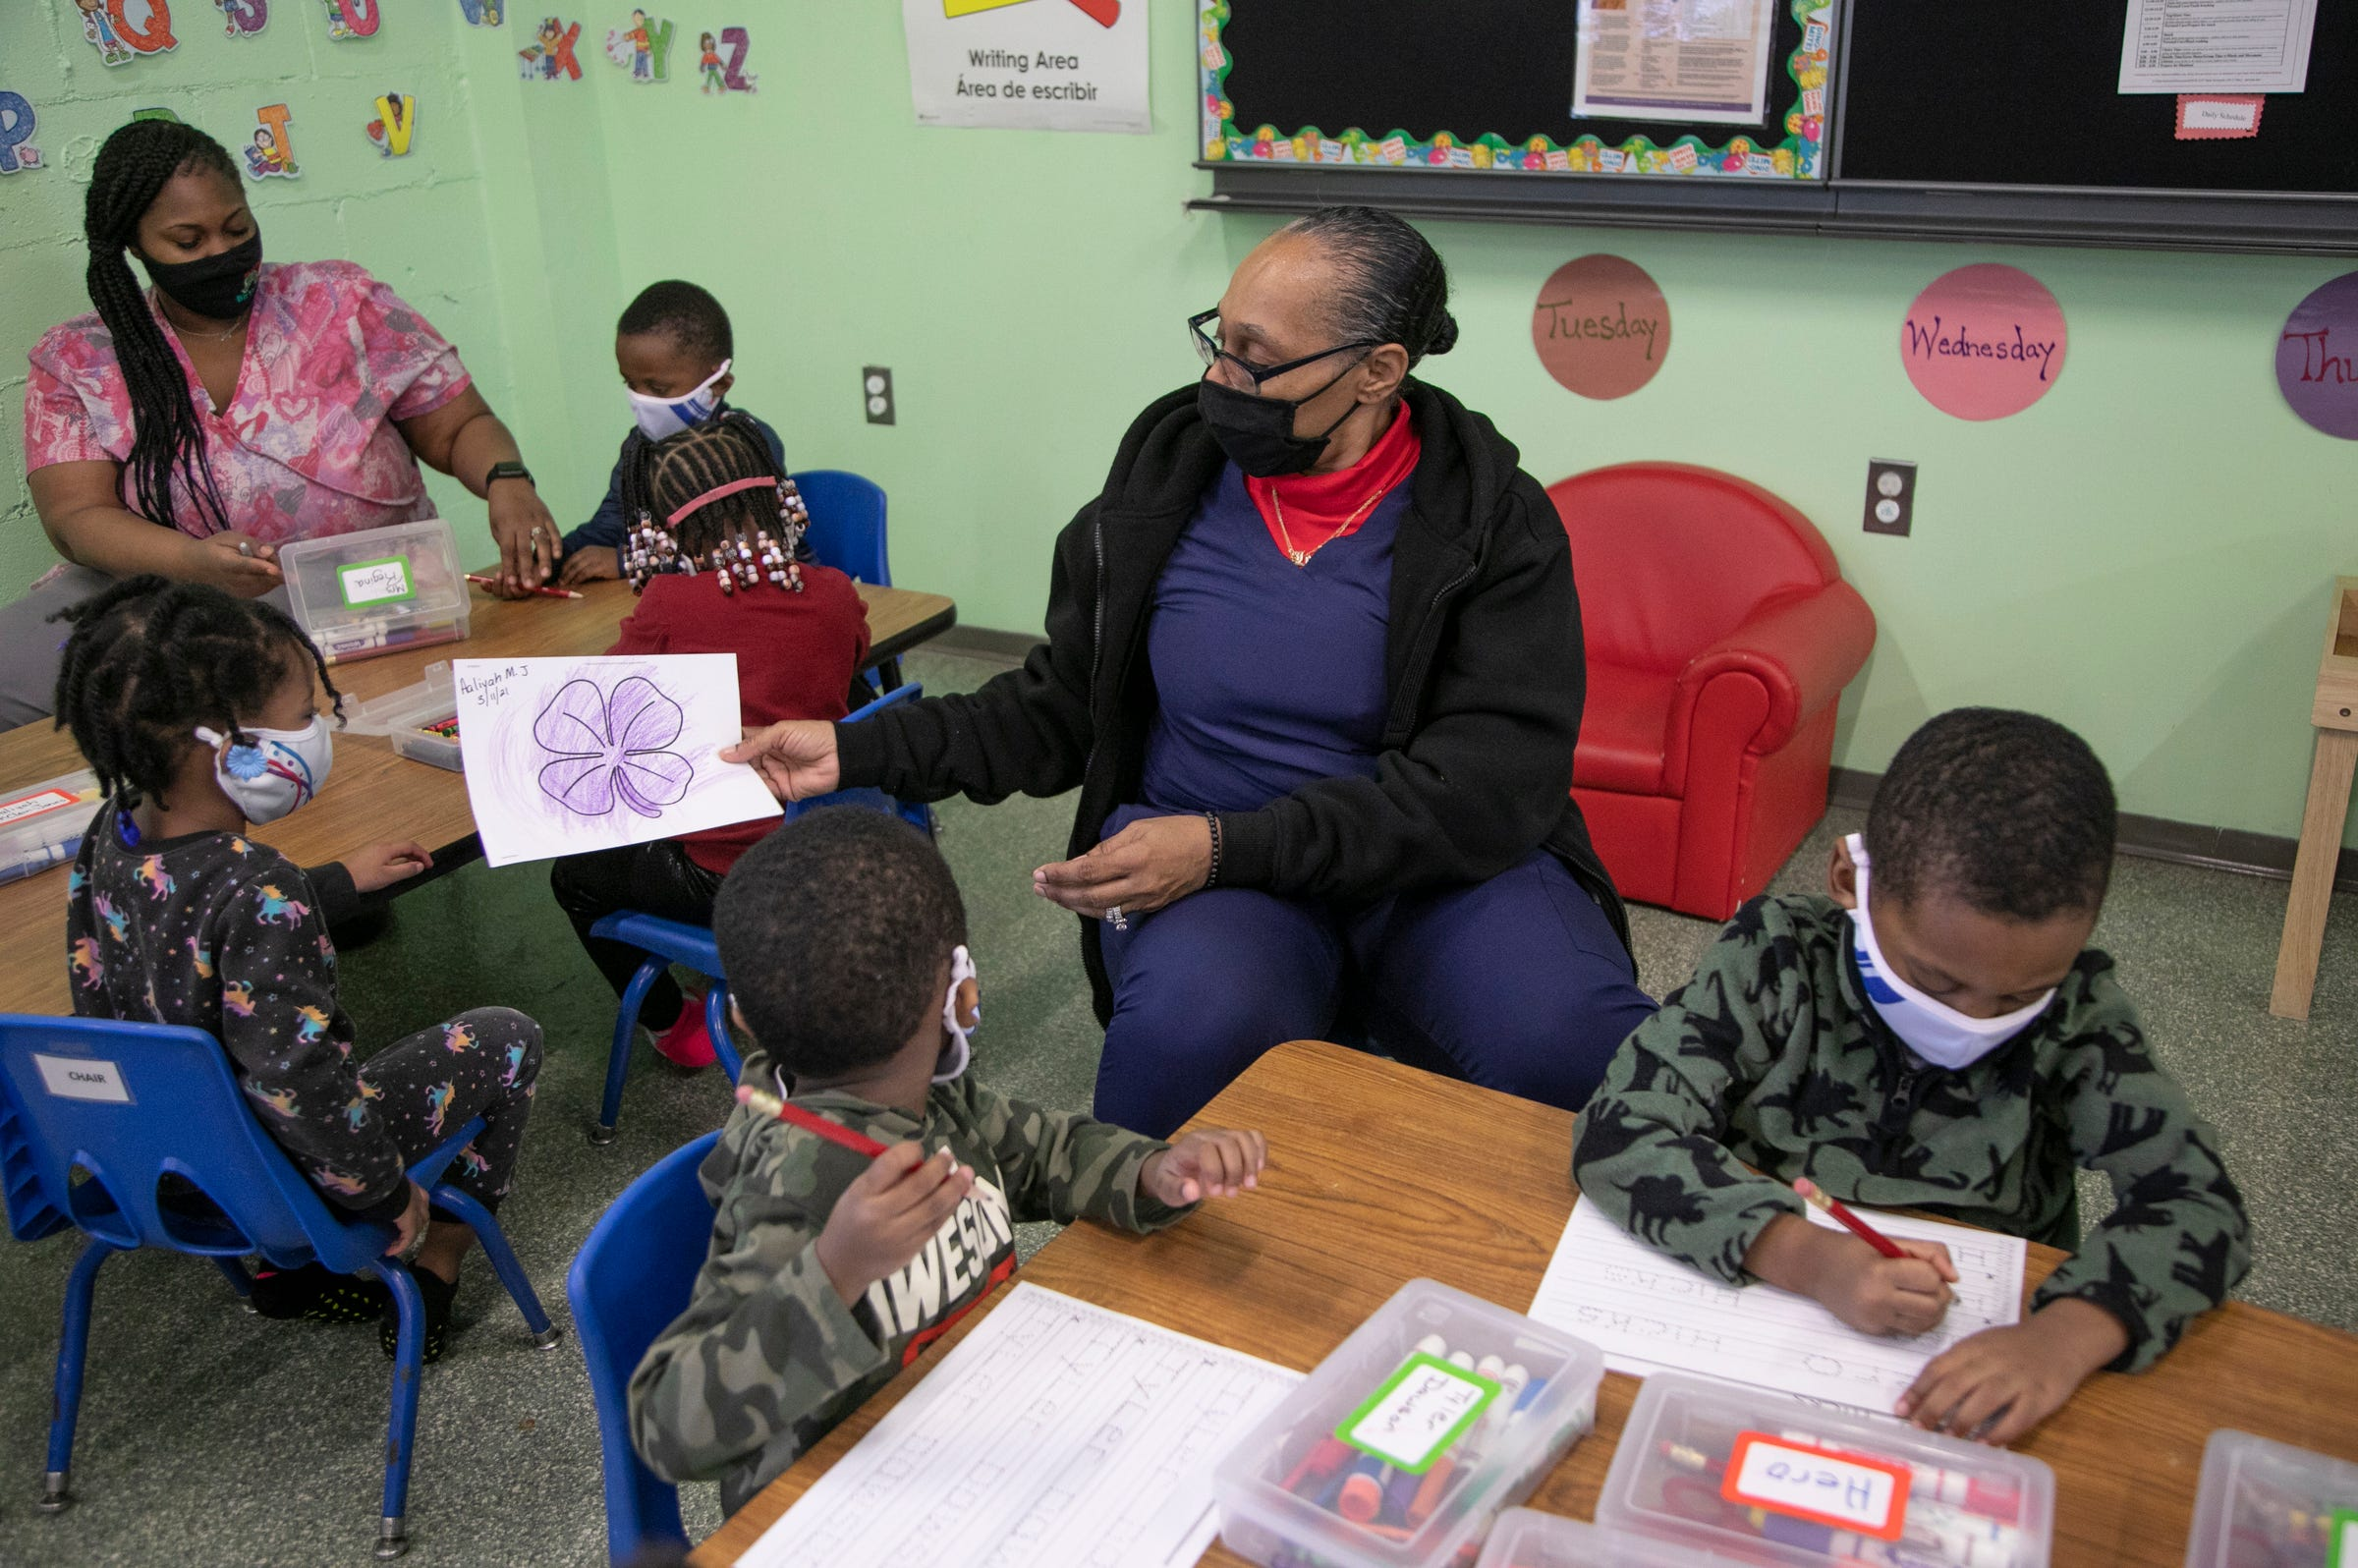 Lead teacher Regina Bride, middle, looks at a student's work on Mar. 11, 2021 as she teaches at the Franklin Wright Settlements in Detroit that turns 140 this year. The organization is all about helping Detroiters with basic life, social and family needs.